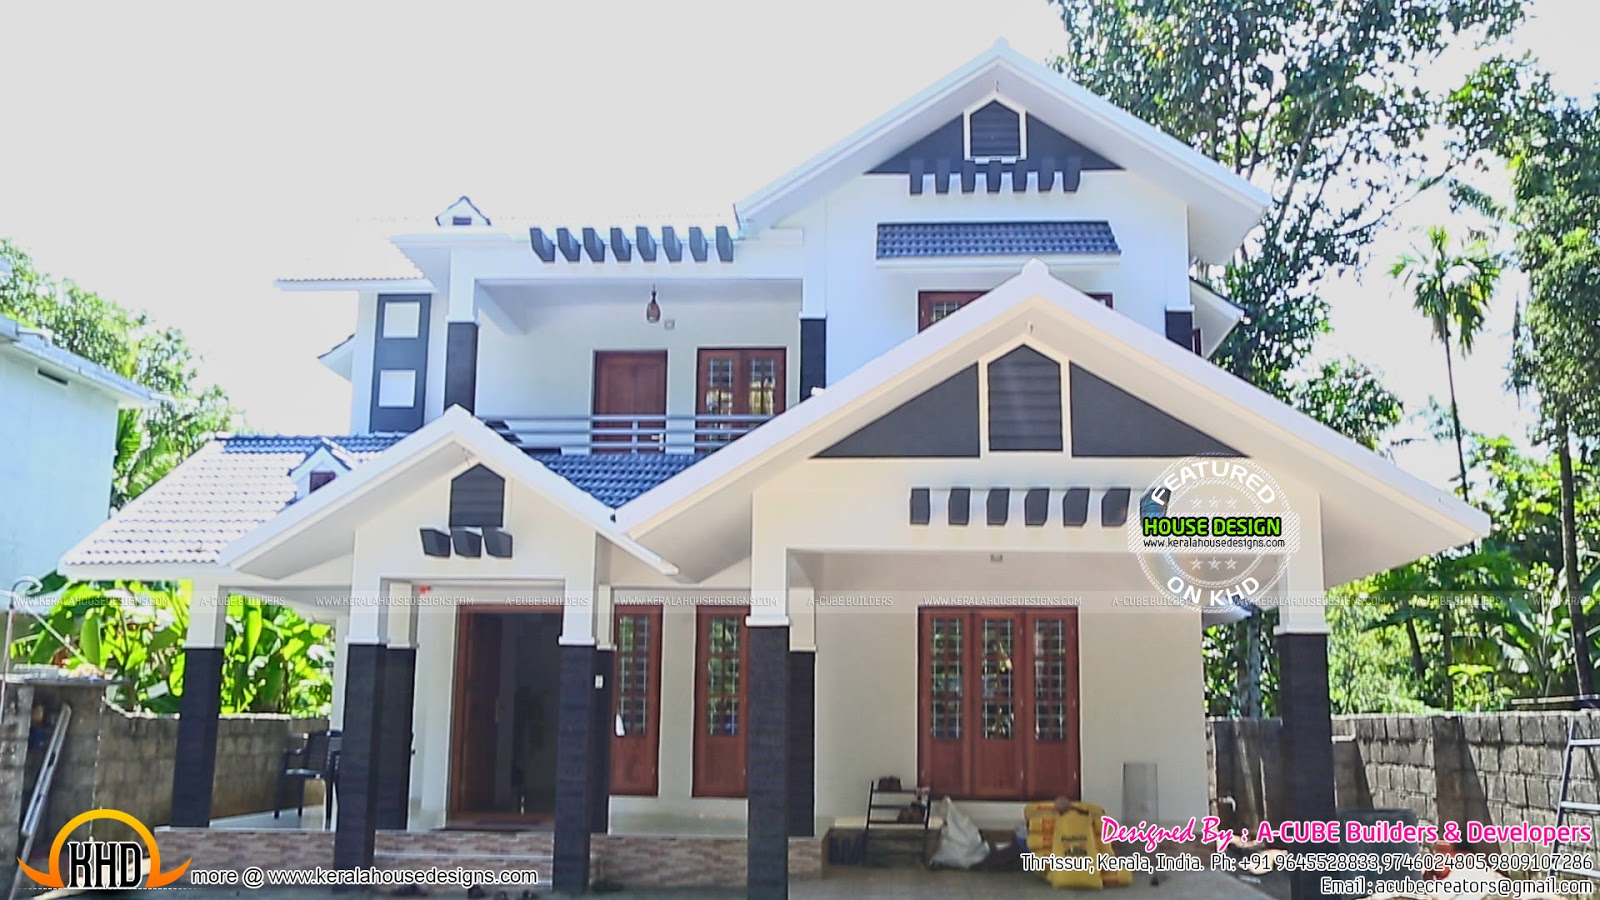 New house plans for 2016 starts here kerala home design and floor plans - Home in design ...